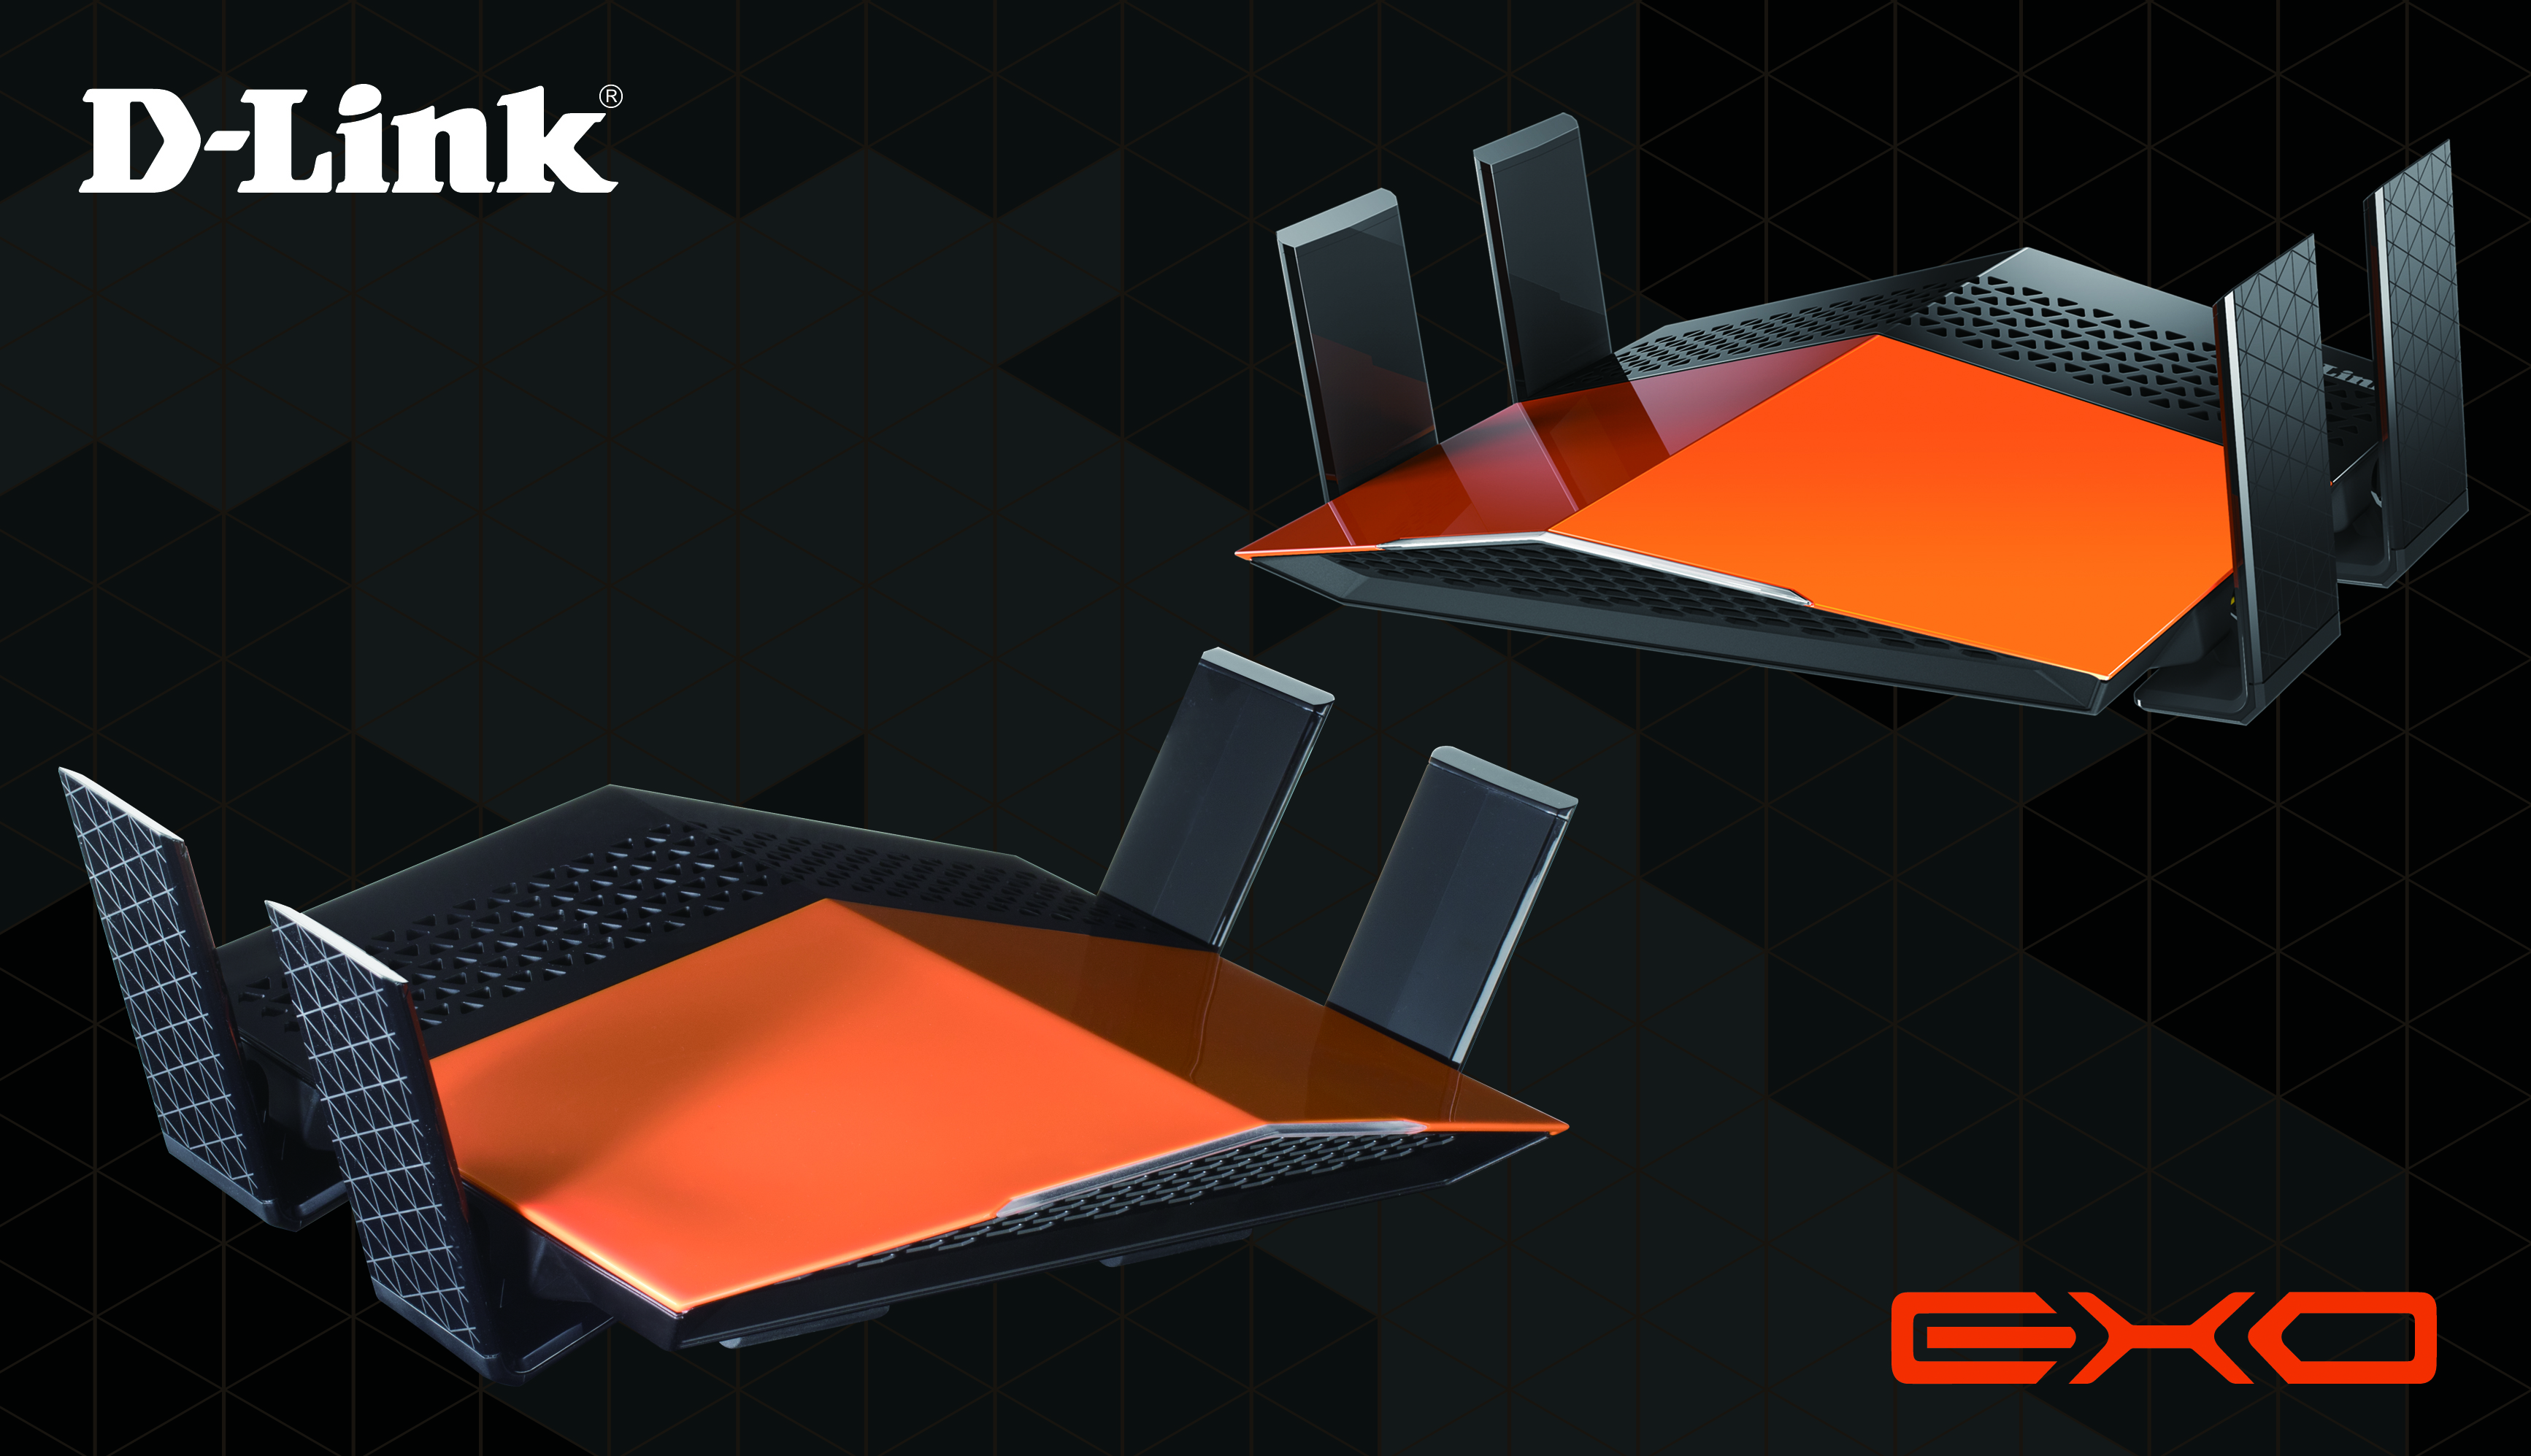 D link launches new line of exo routers featuring premium for Home router architecture